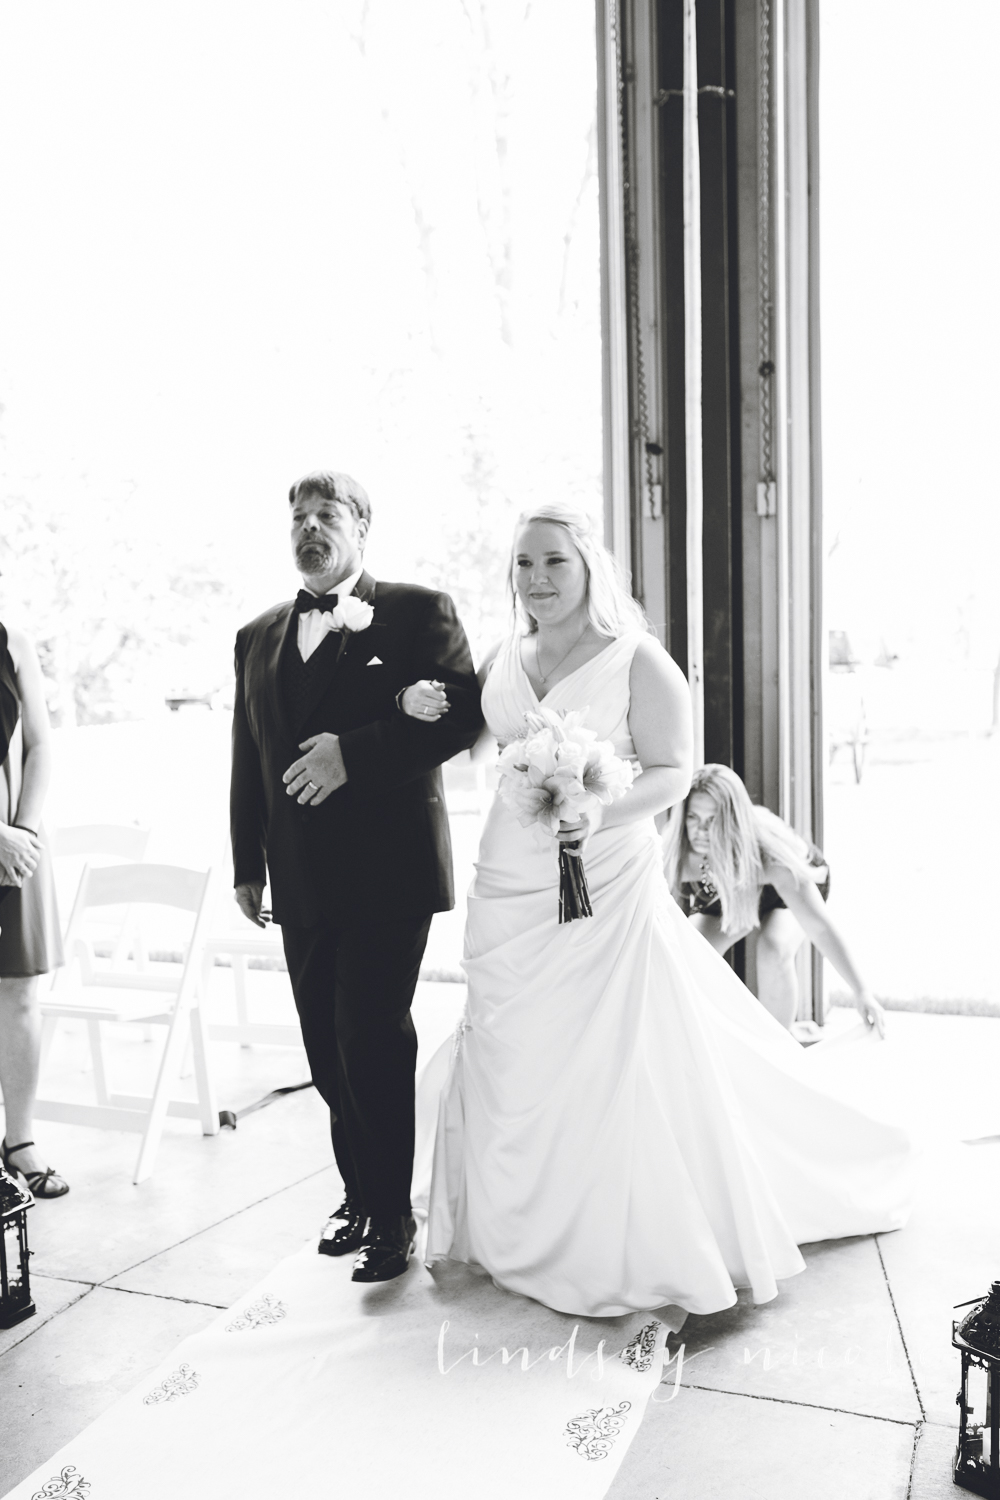 Bethanny looked absolutely stunning on her wedding day.